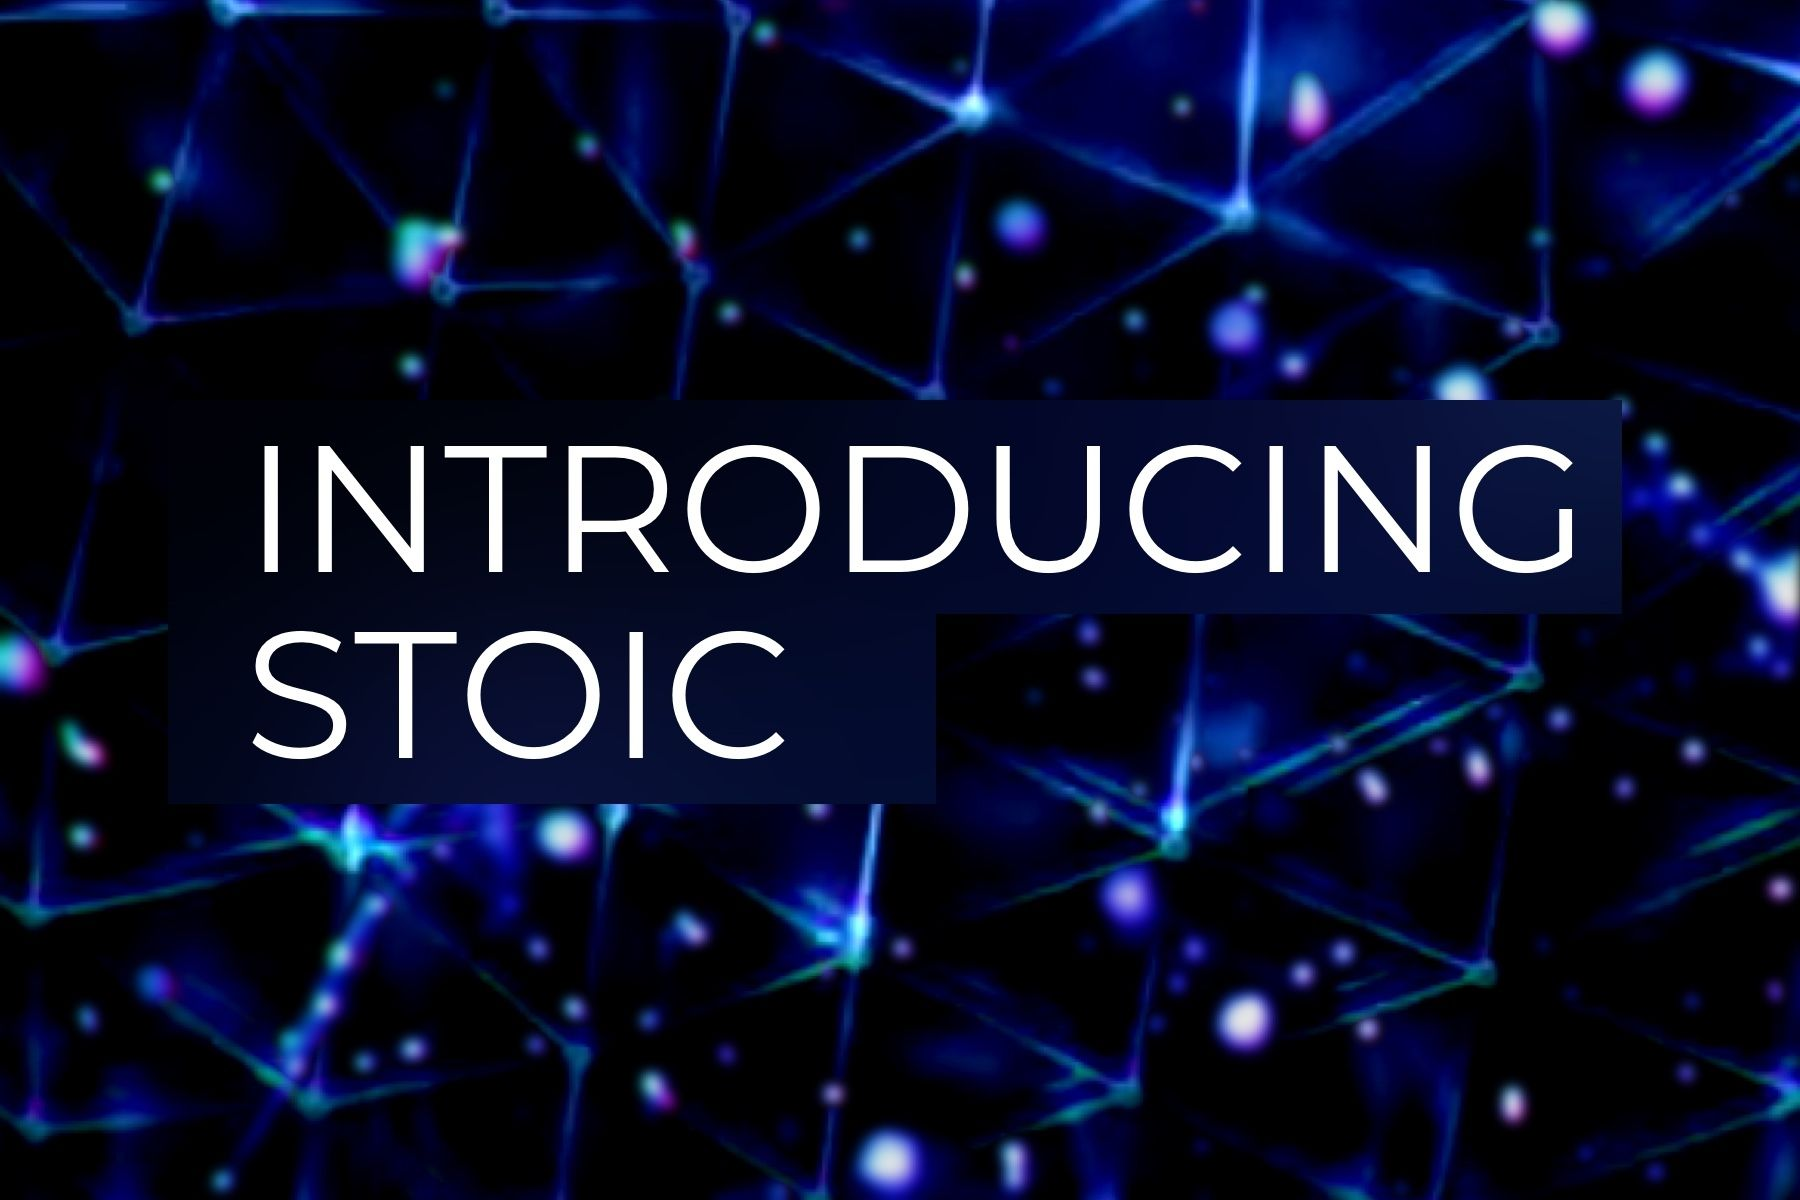 Introducing Stoic: automated crypto trading with a hedge fund edge